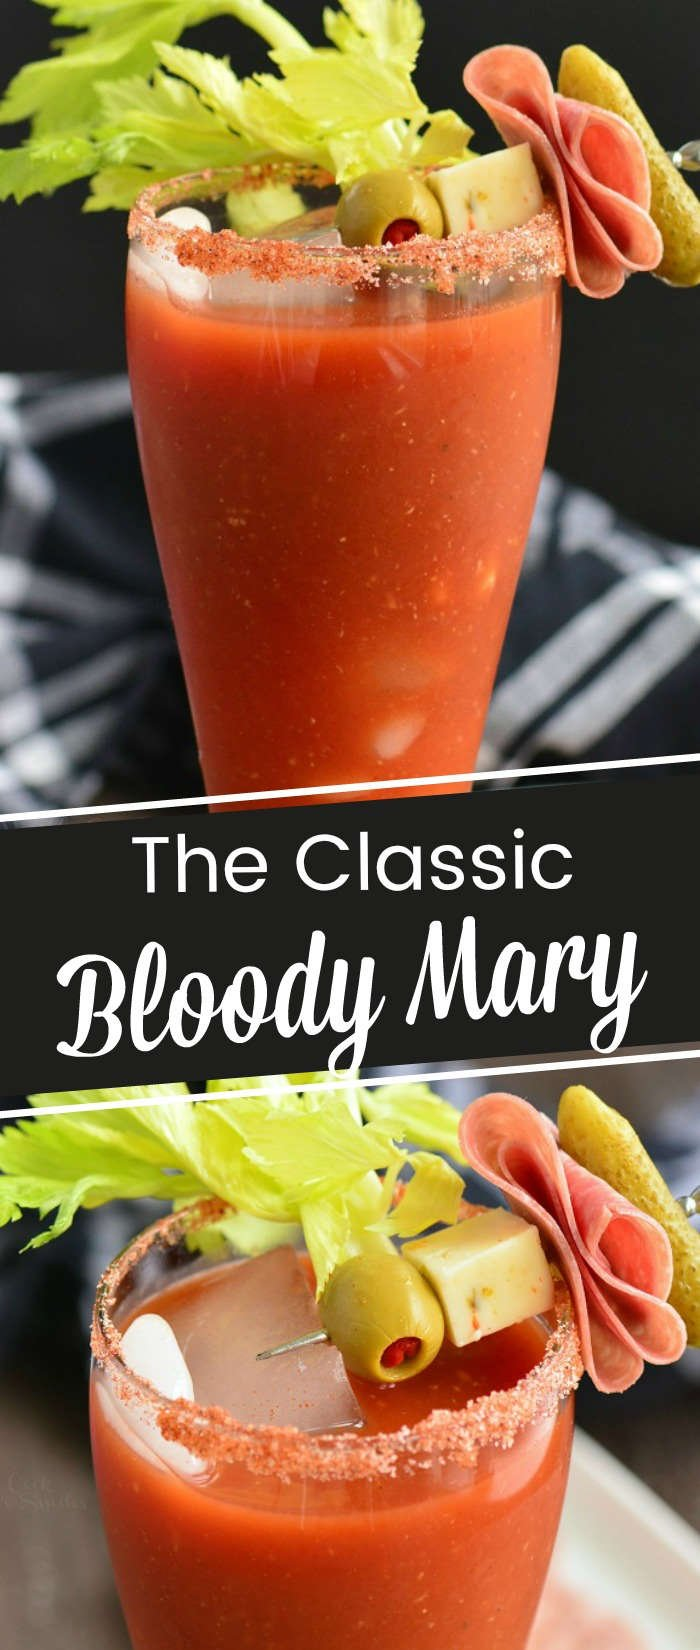 titled photo collage: The Classic Bloody Mary